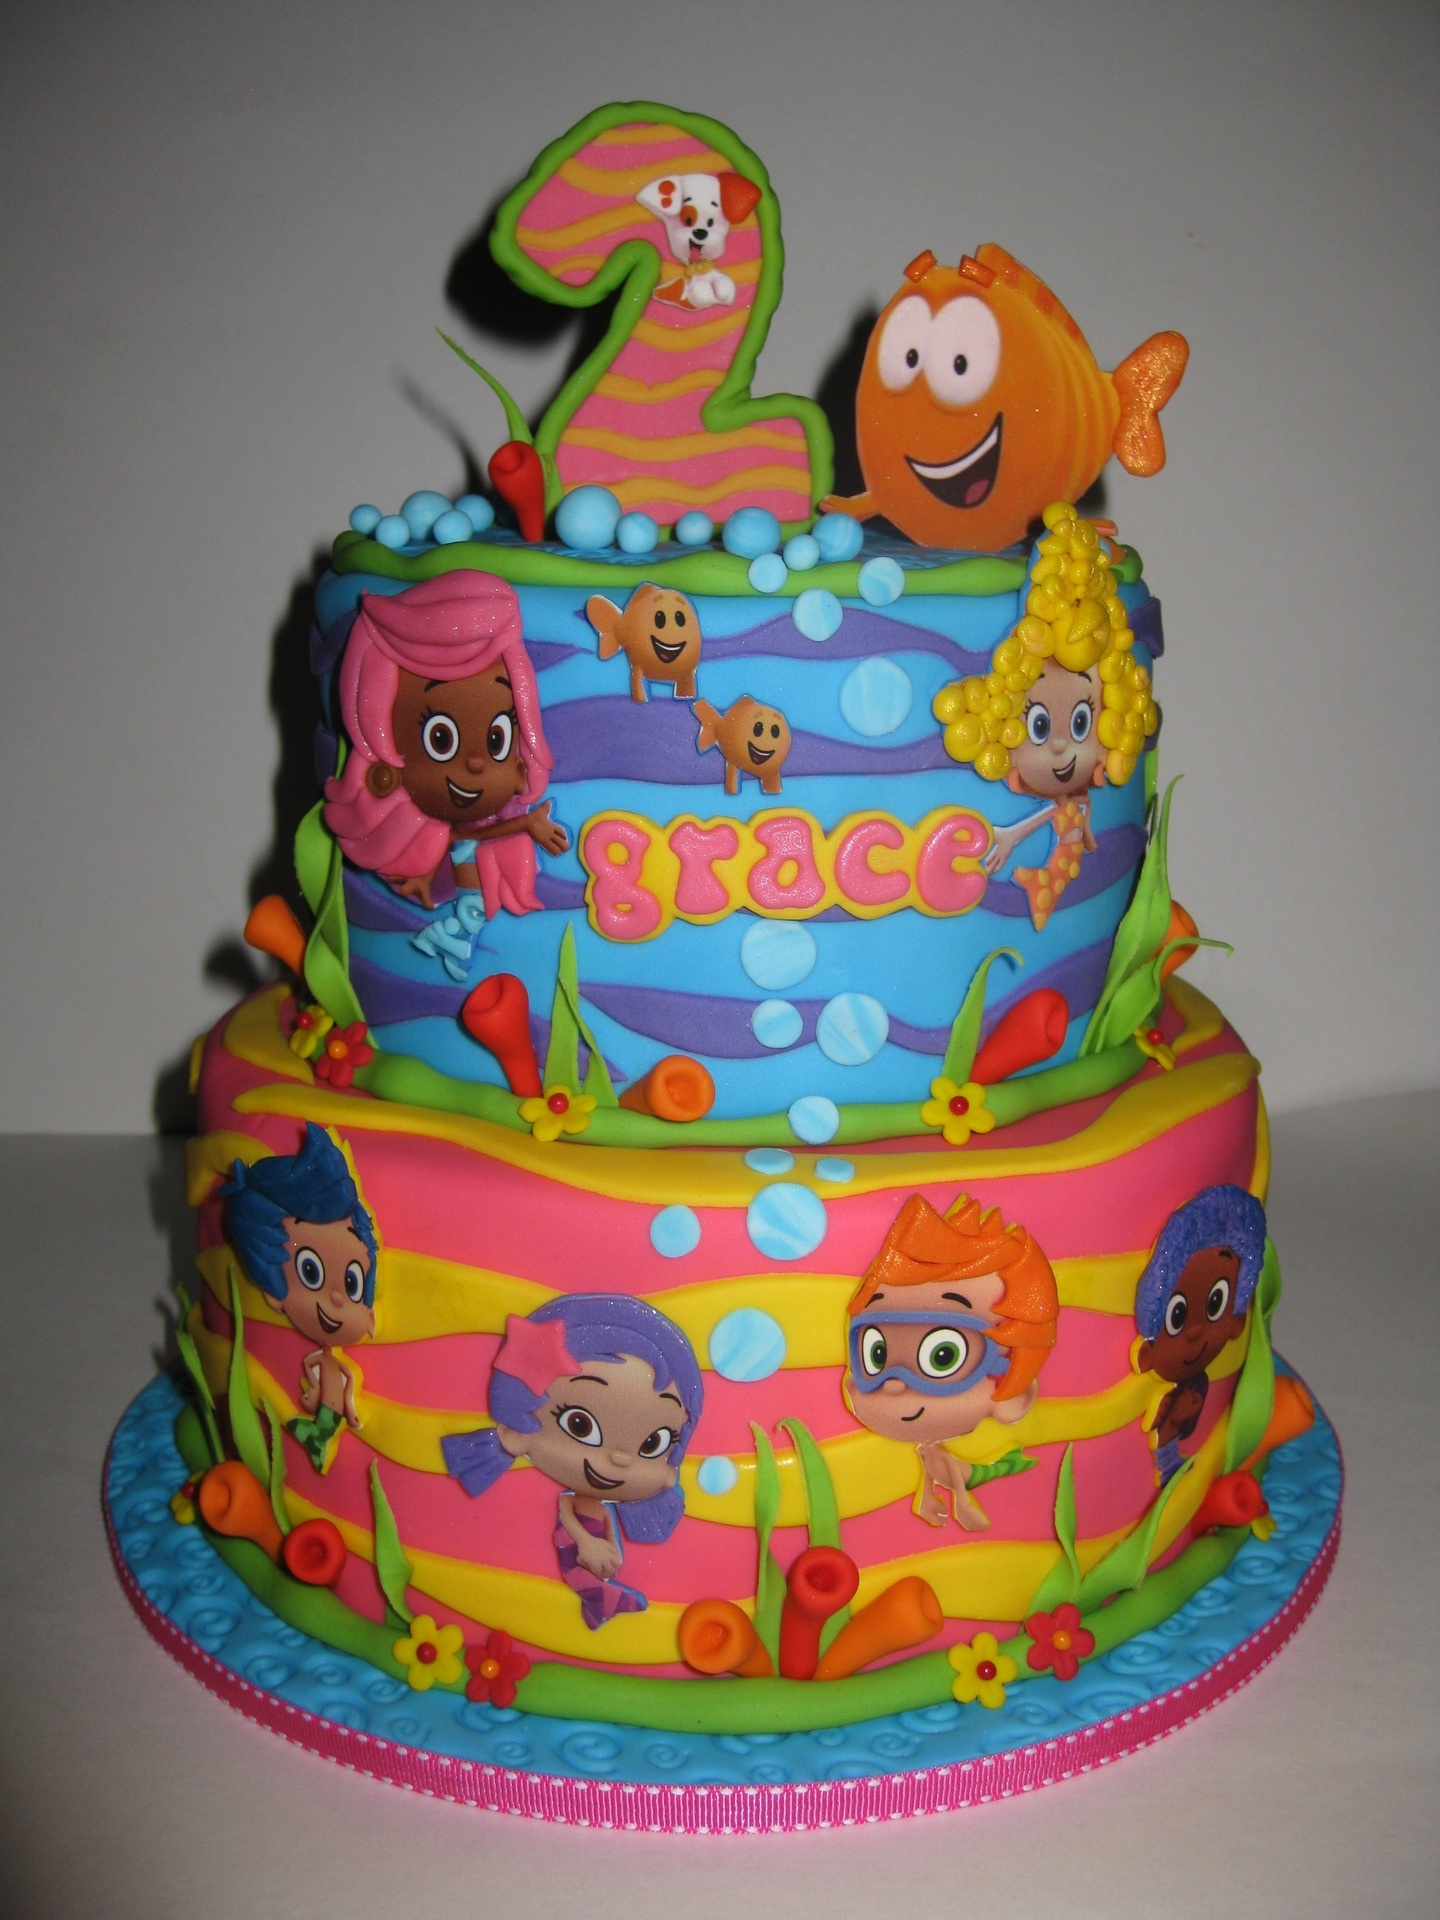 Grace's Bubble Guppies Birthday